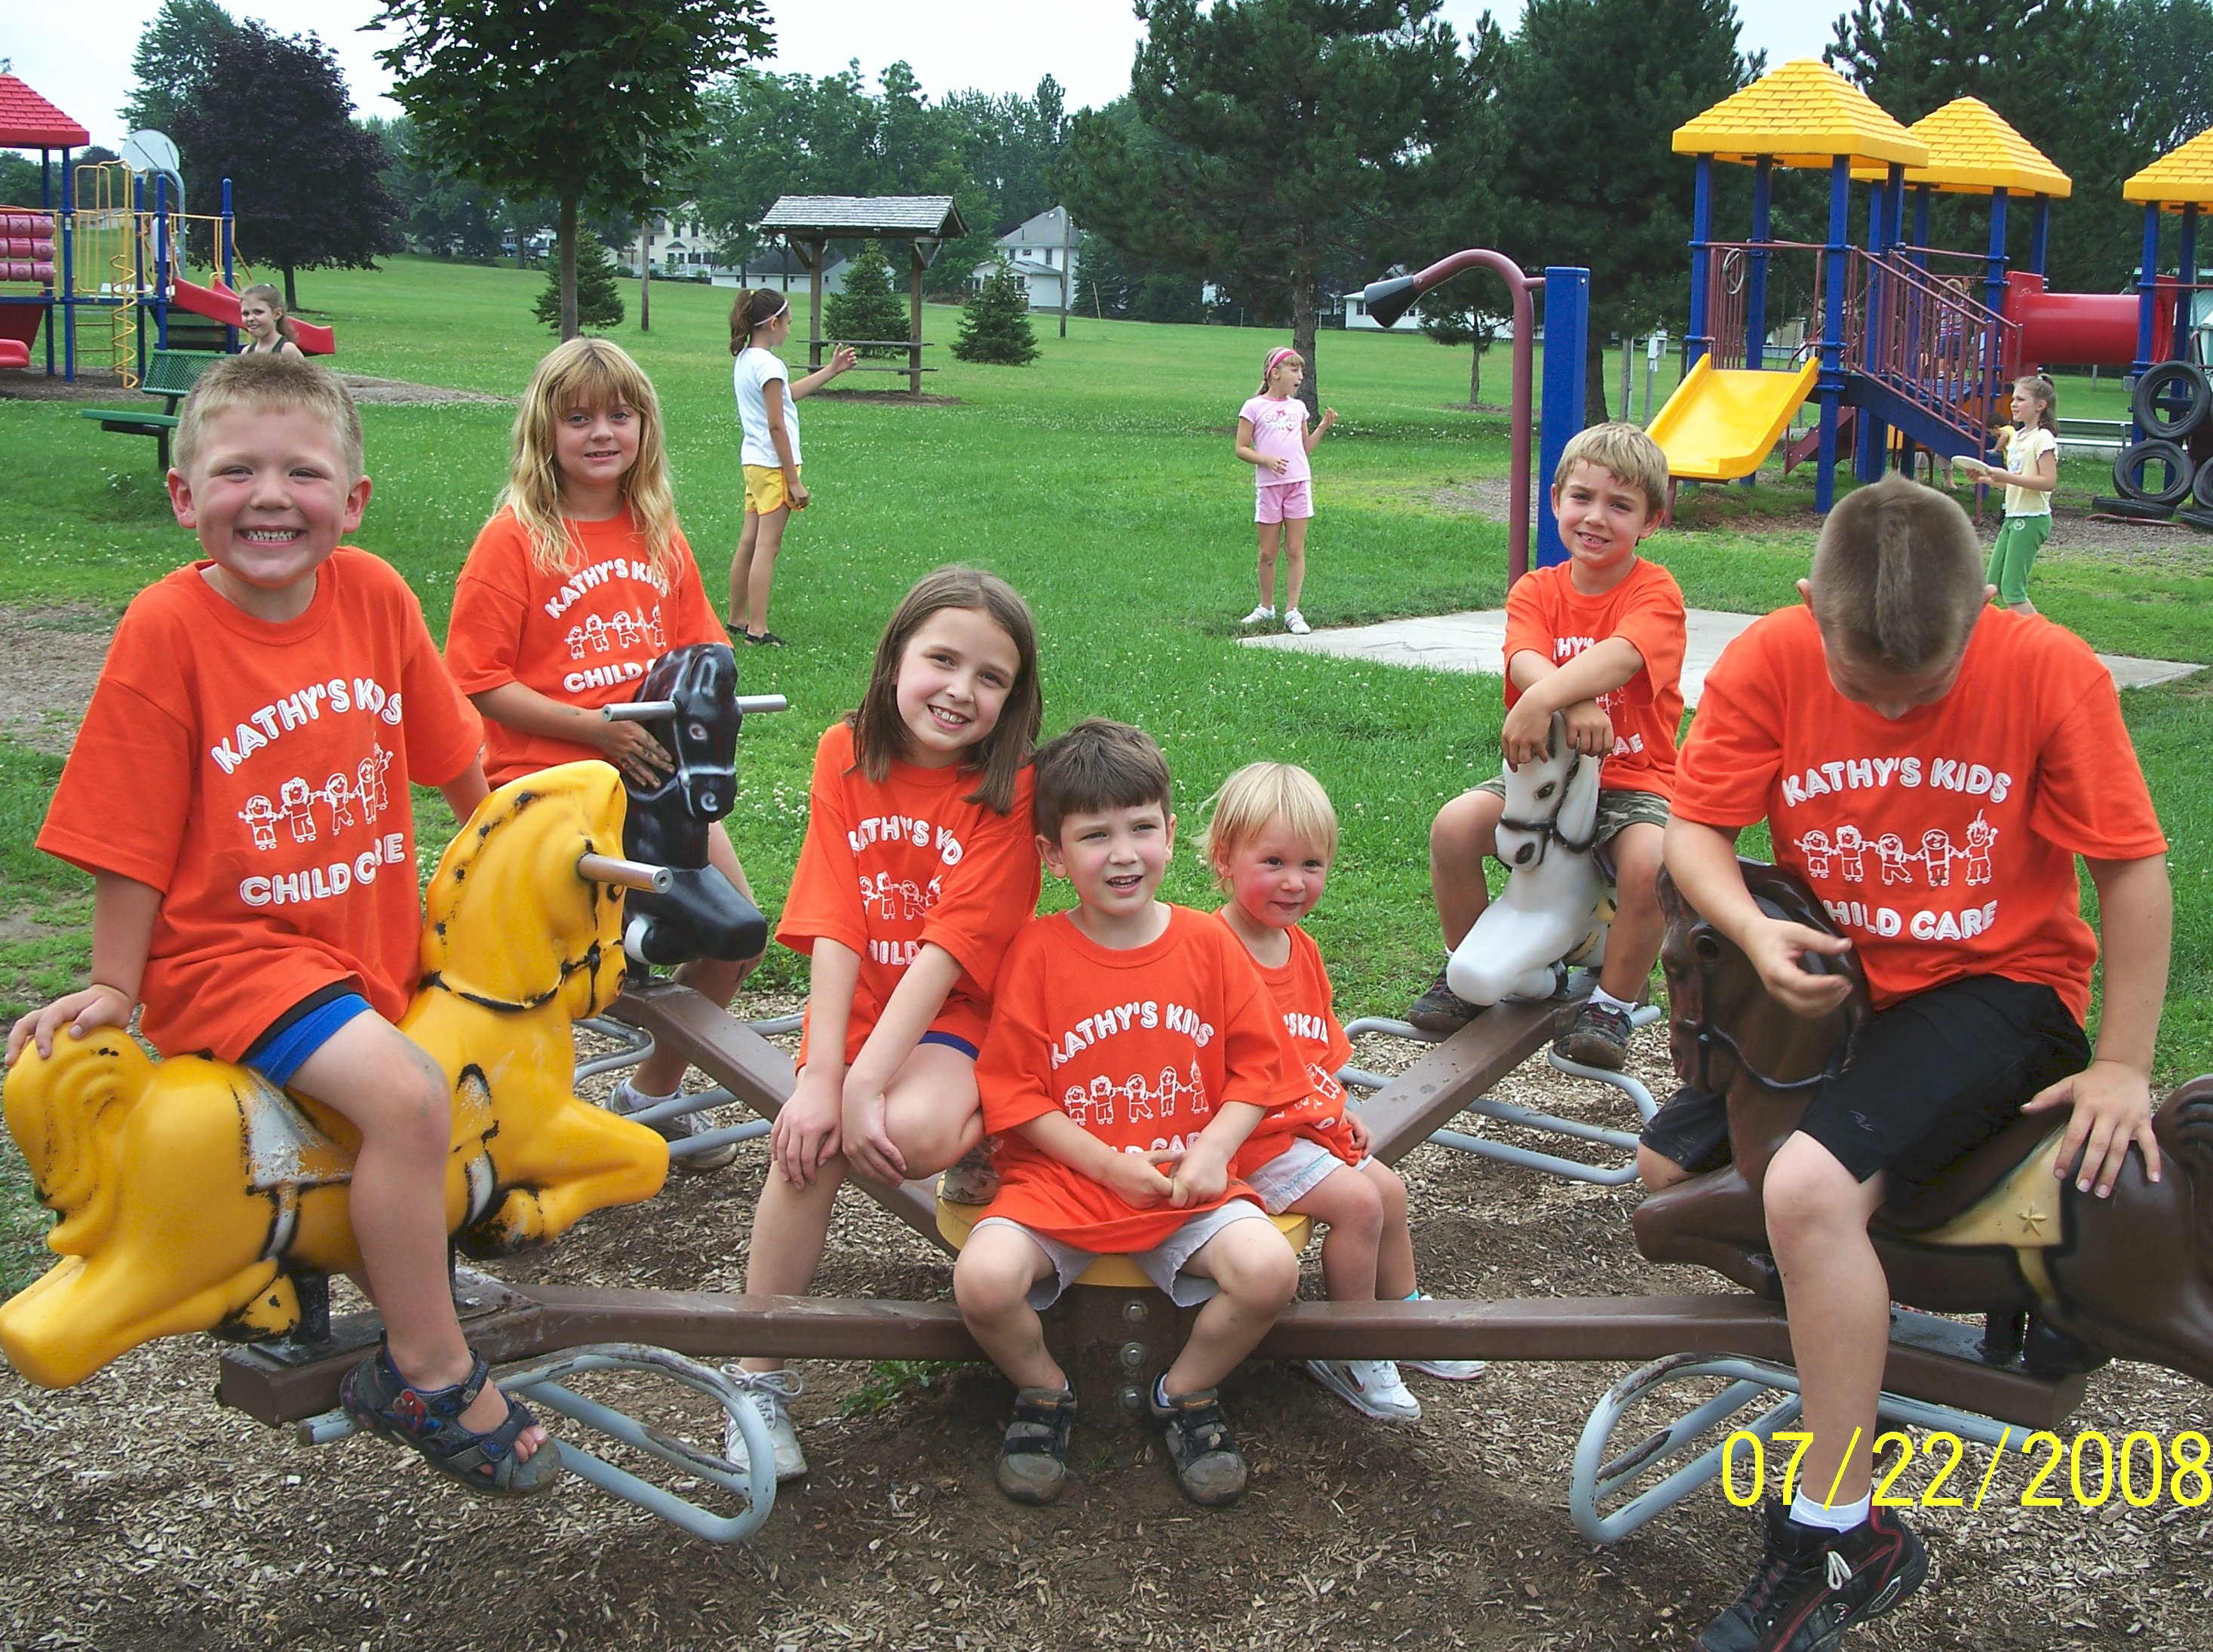 Design your own t-shirt for toddlers - Kathy S Kids Child Care Field Trip T Shirt Photo